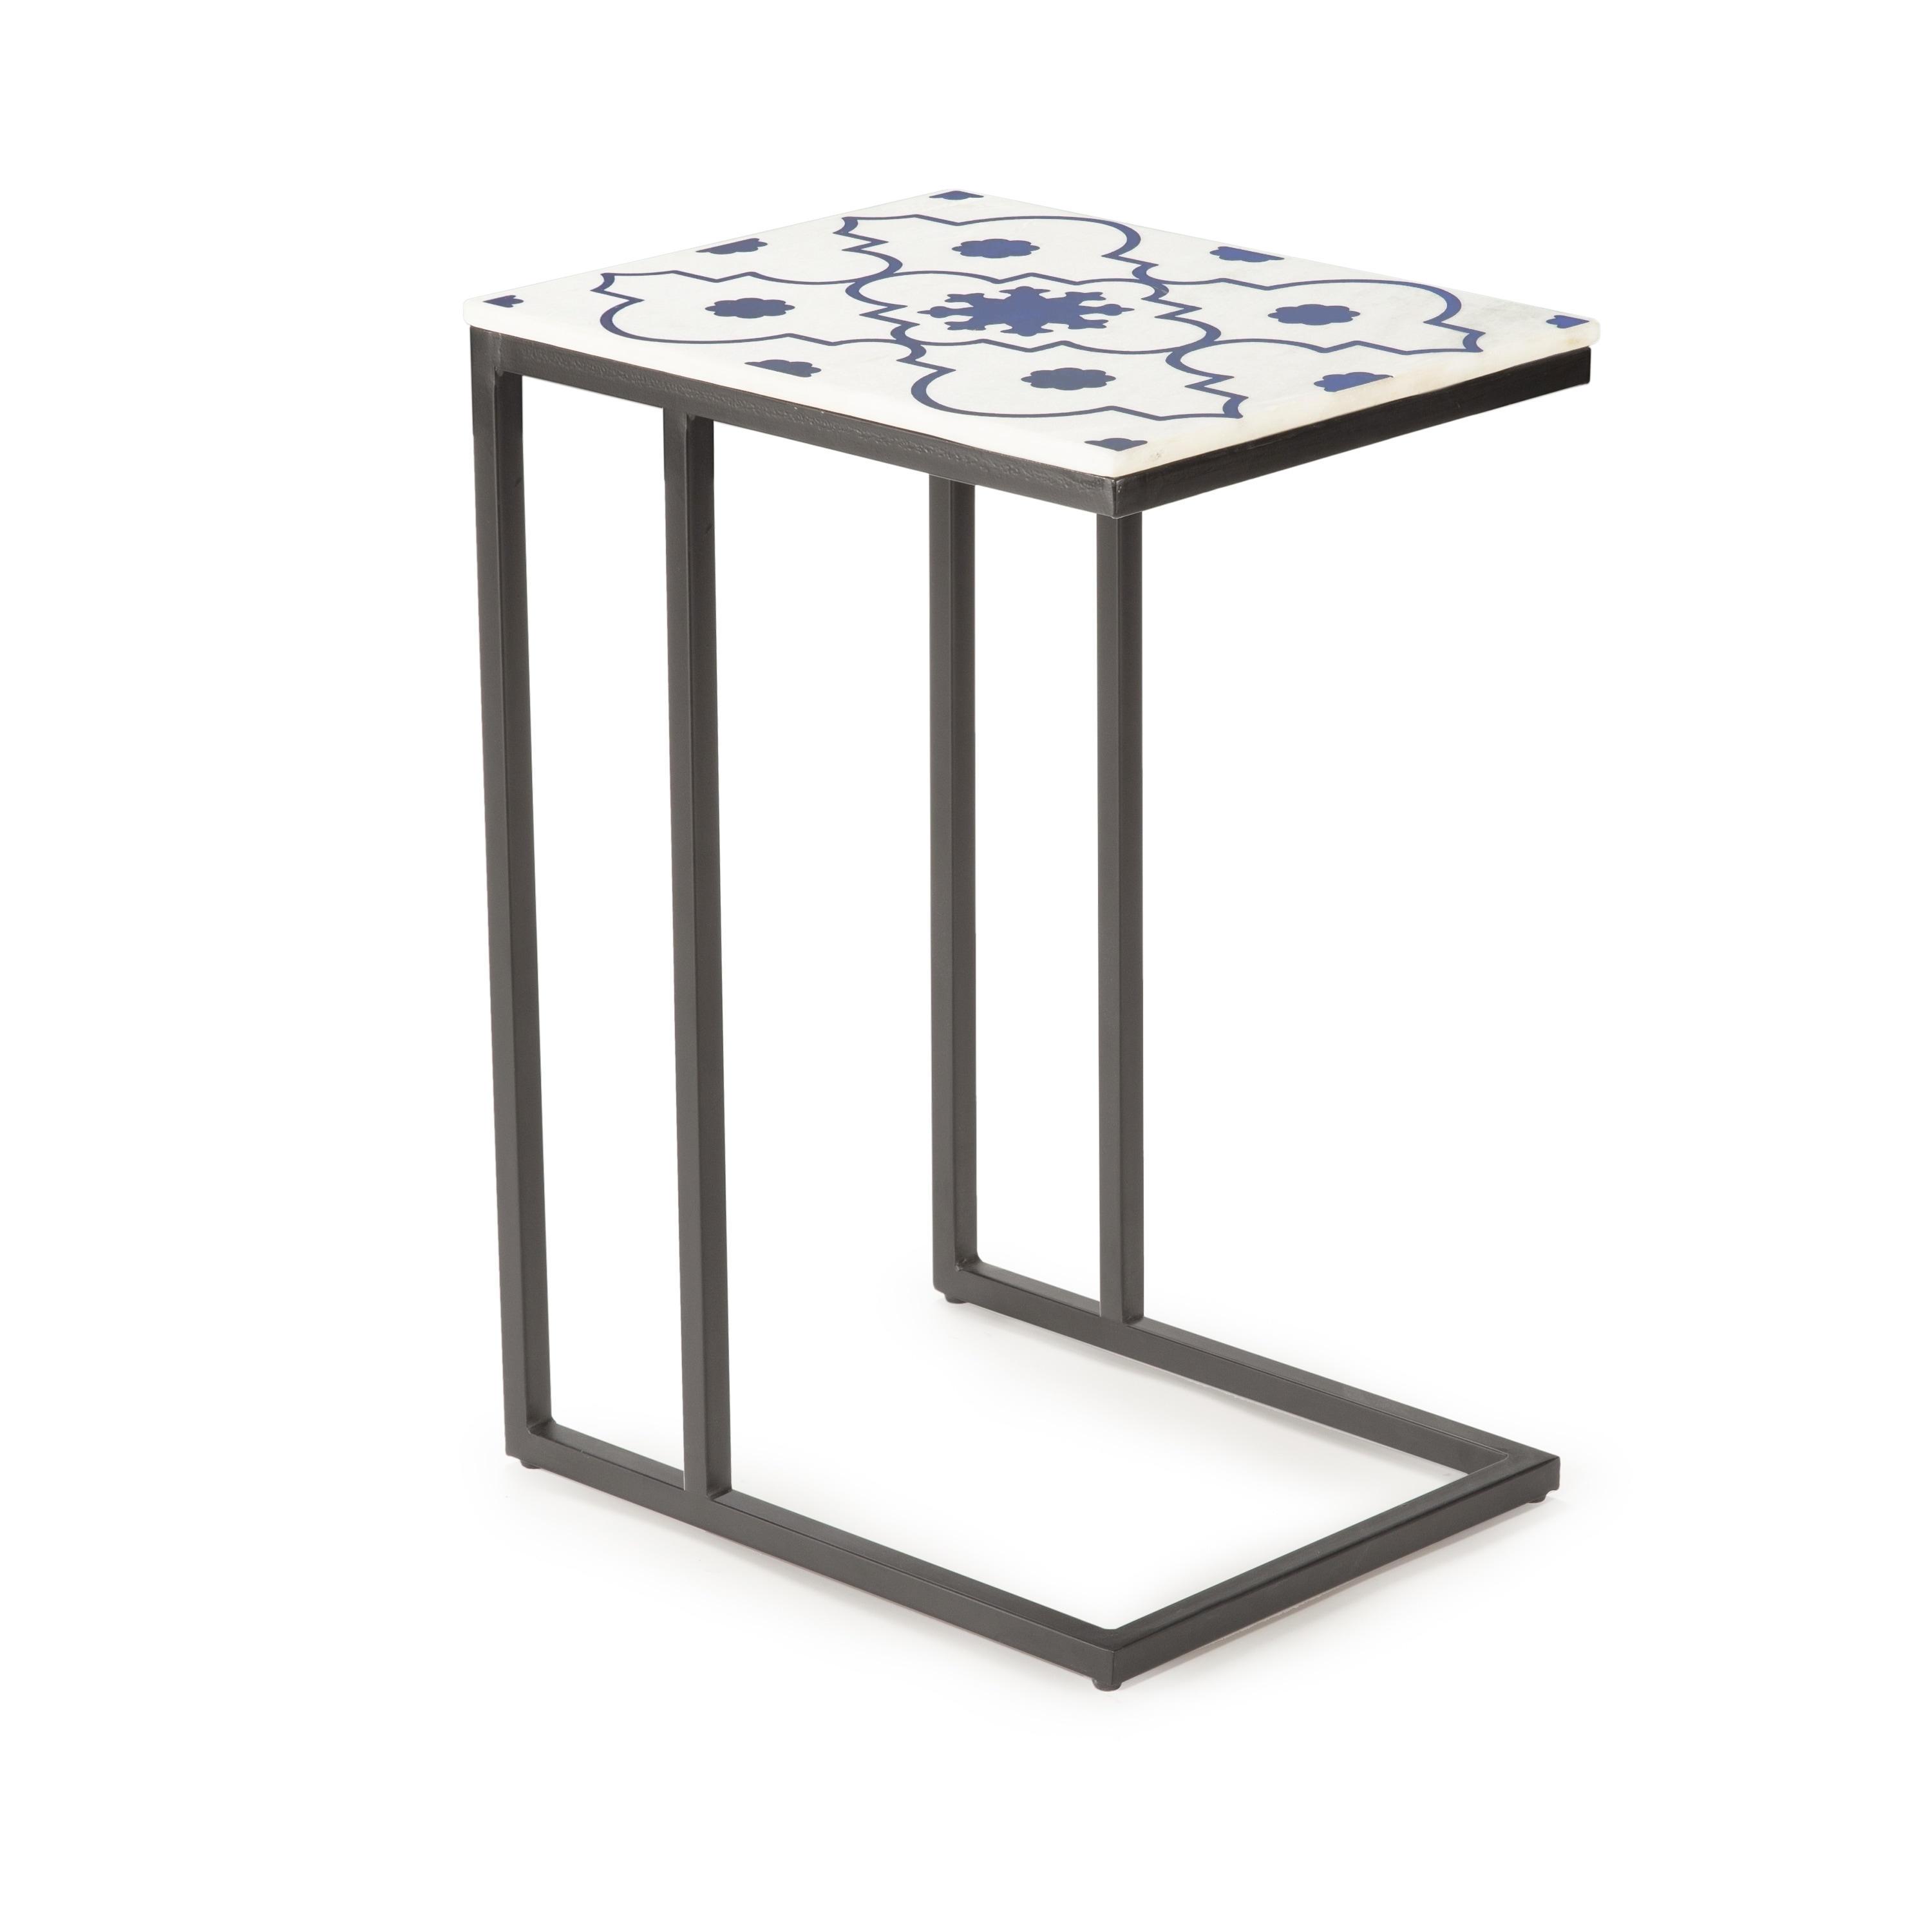 Cool Lara Marble Top Chairside Table By Greyson Living Caraccident5 Cool Chair Designs And Ideas Caraccident5Info